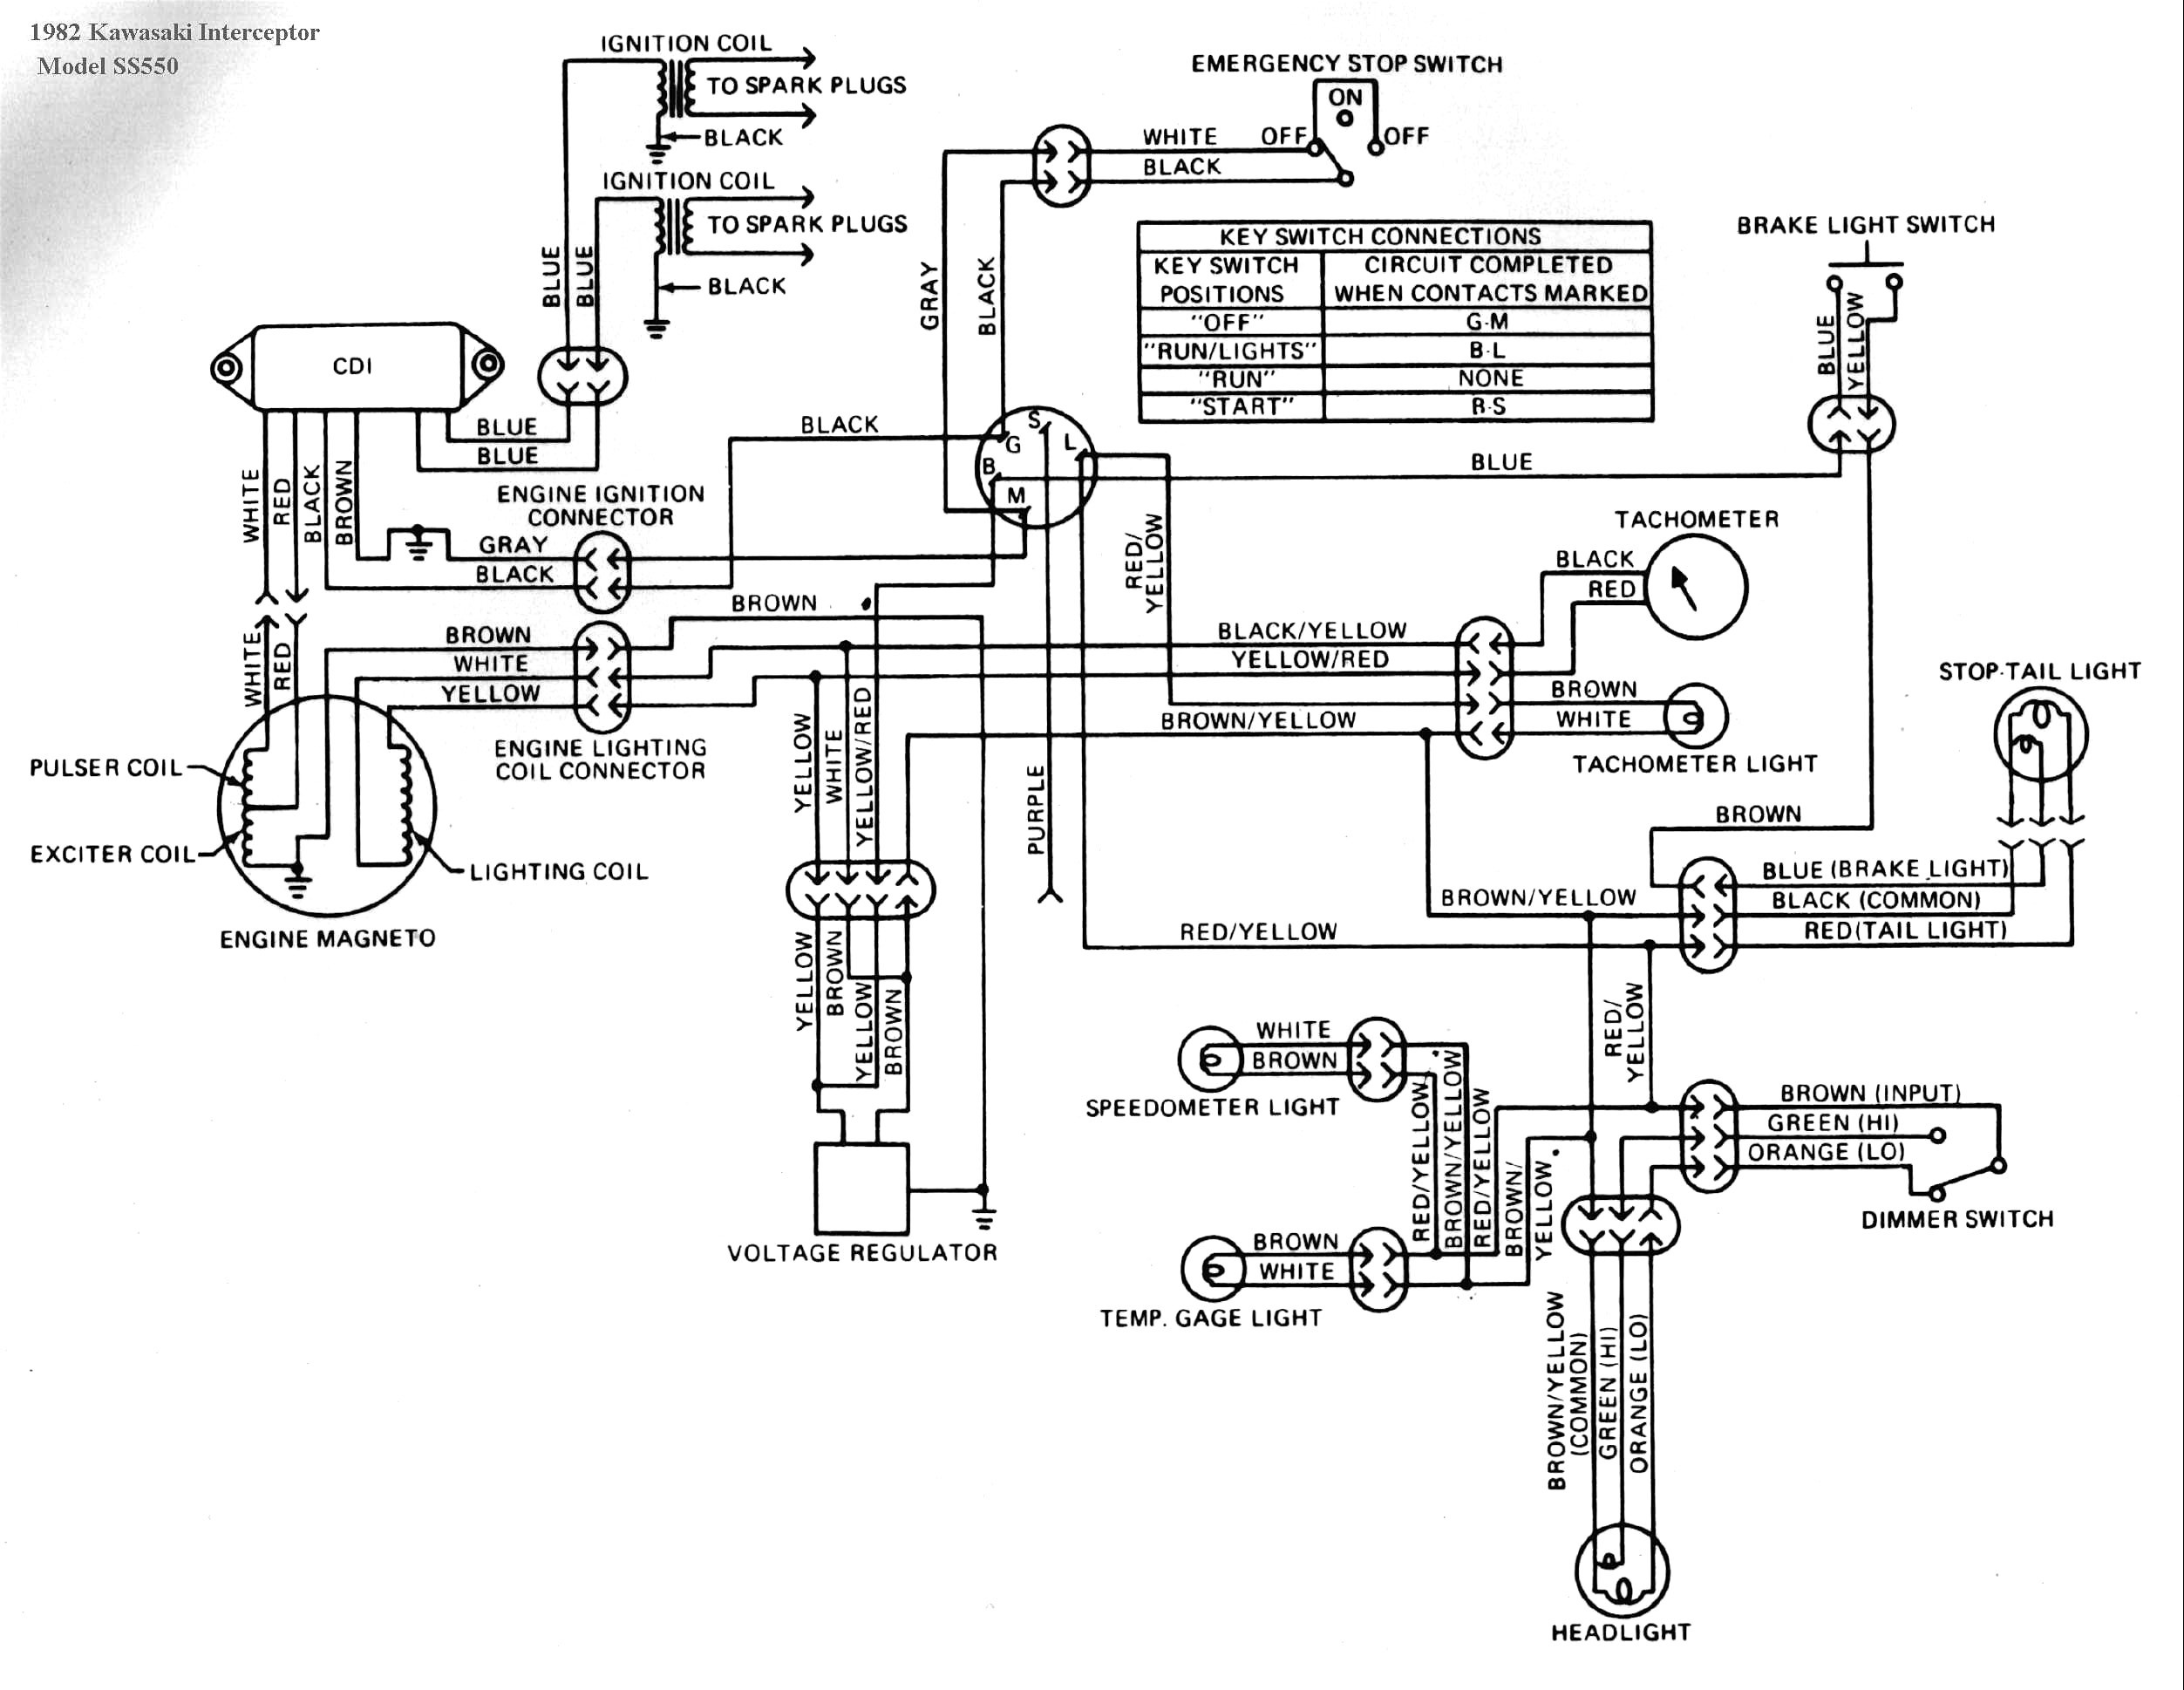 Circuit Electric For Guide: 2007 klr 650 wiring diagram